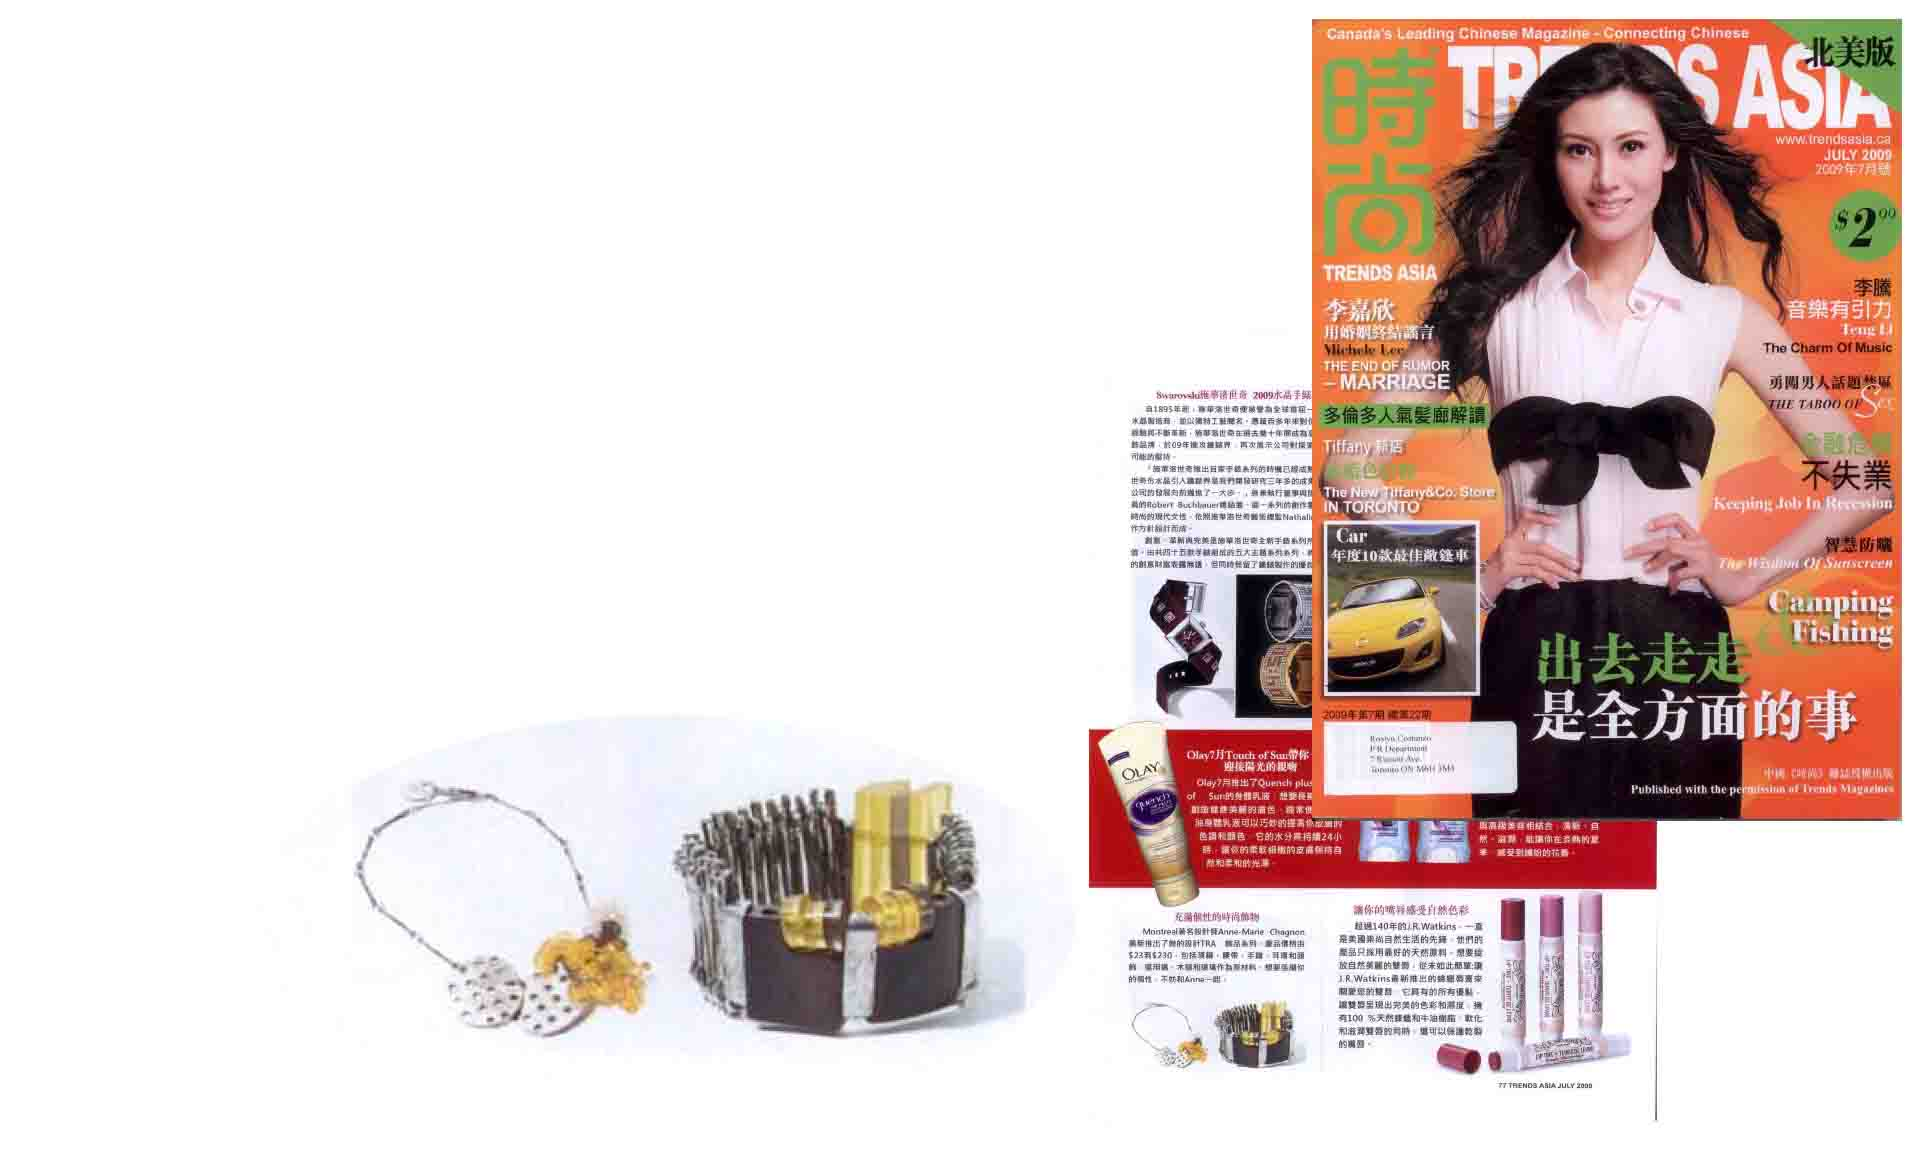 Anne-Marie Chagnon in the Trends Asia magazine